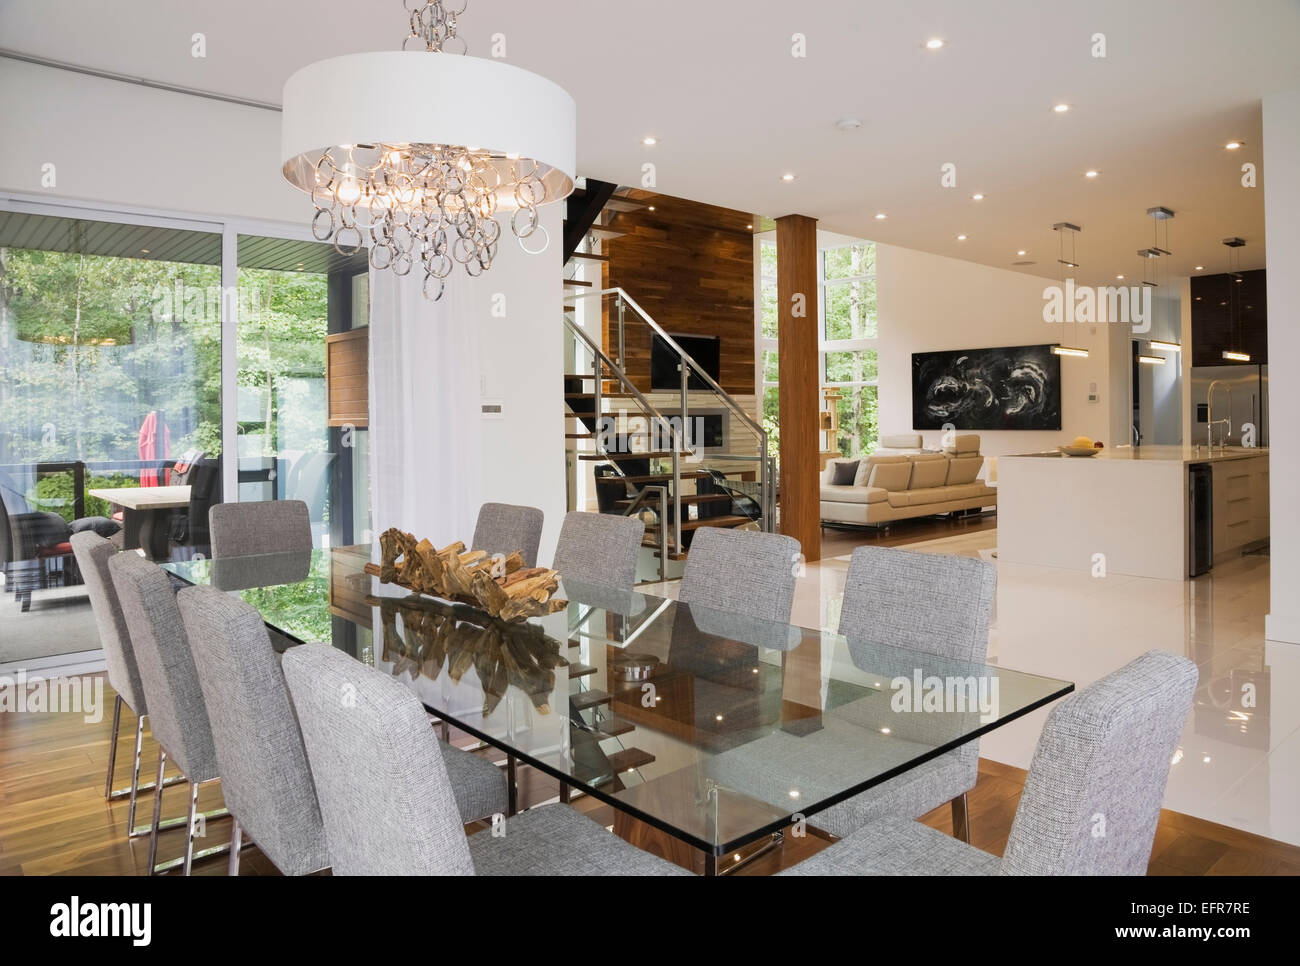 Modern Interior Design Luxury Open Plan Dining Room With Glass Table And Grey Upholstered Chairs